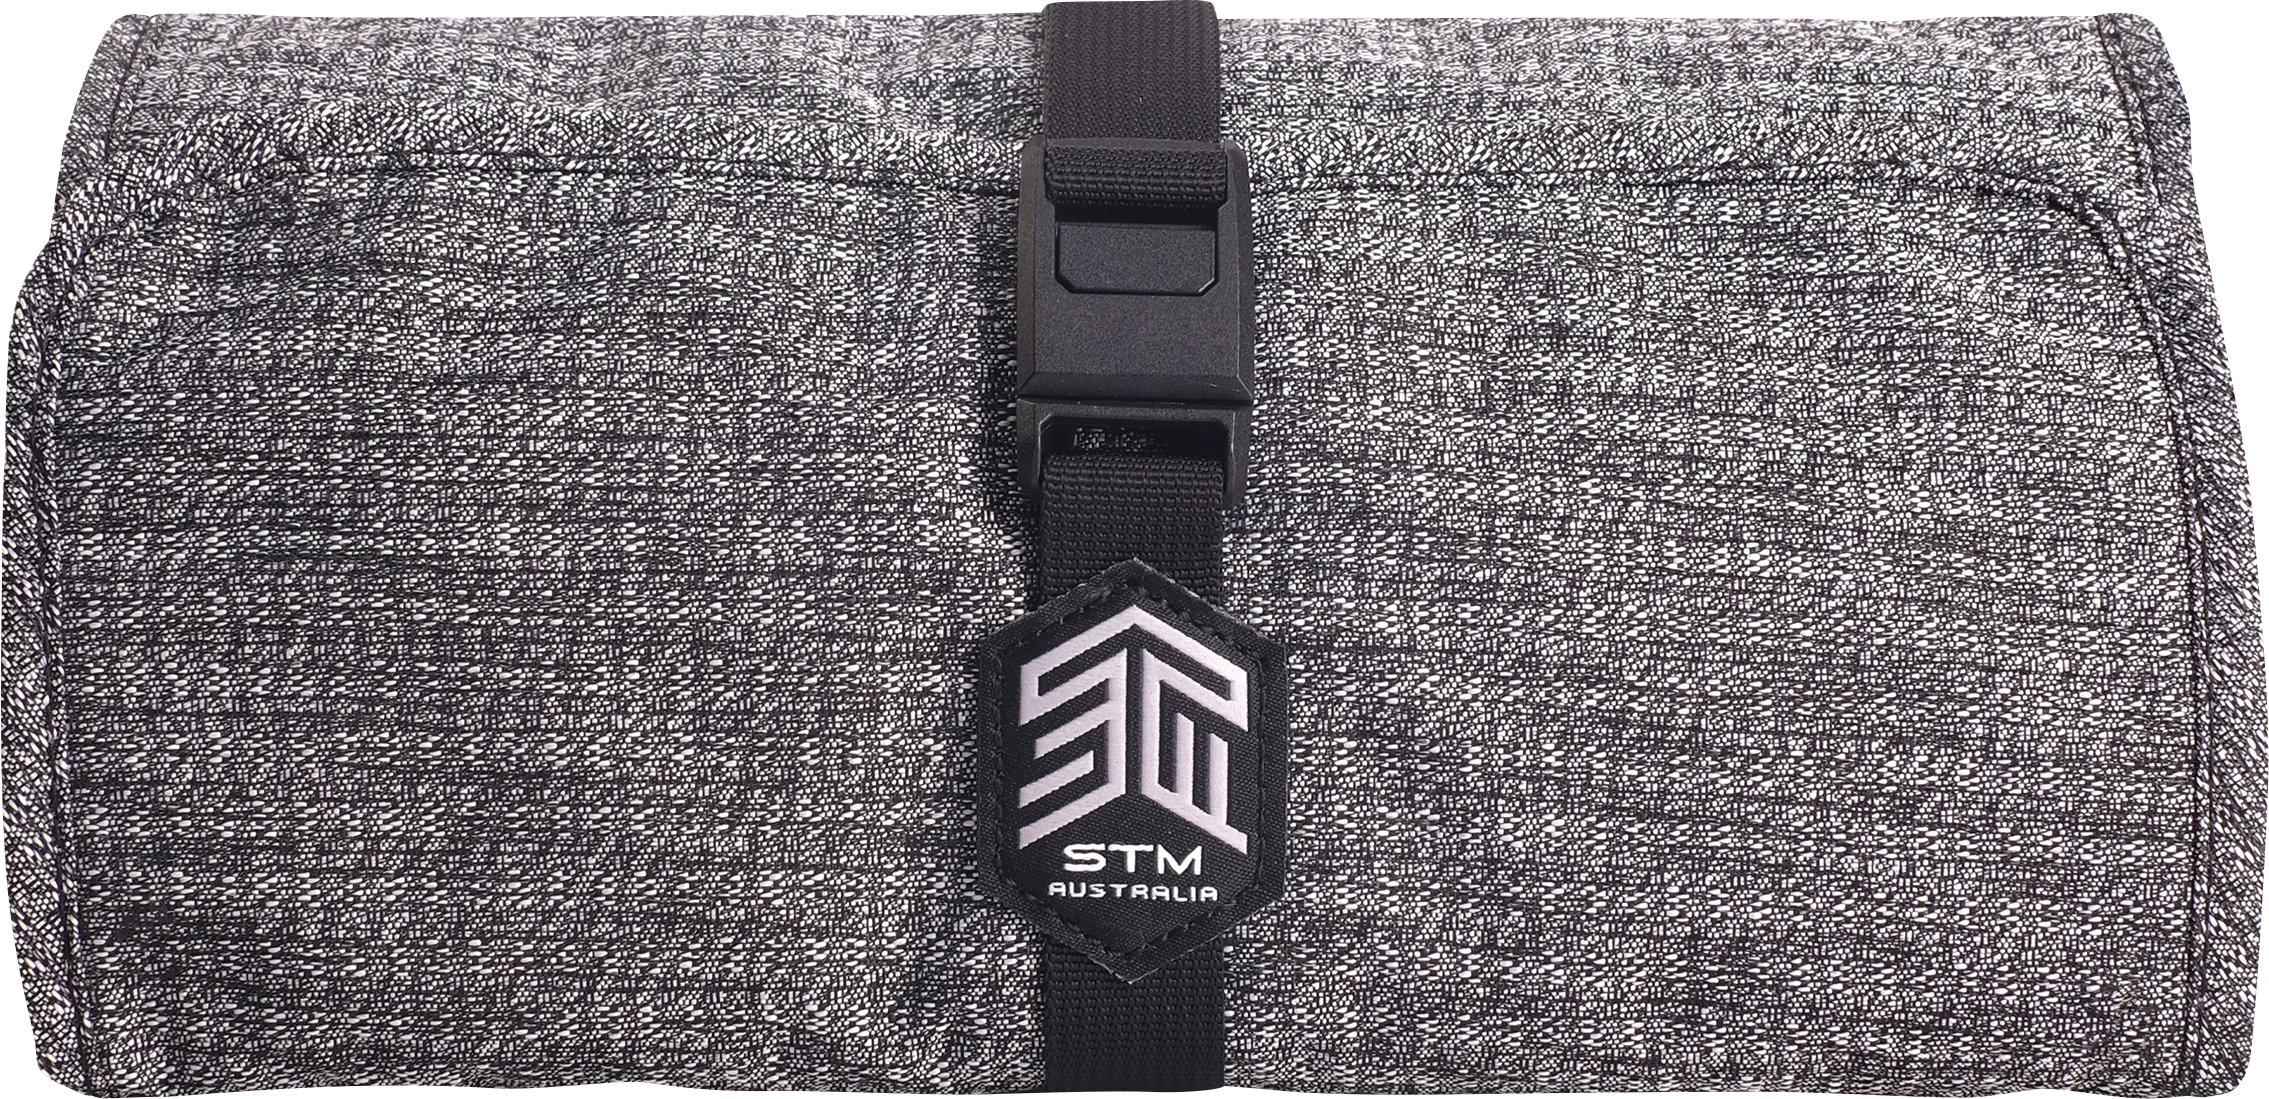 STM Dapper Wrapper Keep accessories contained and neatly ordered on the move with the Dapper Wrapper's functional pockets and refined aesthetics.